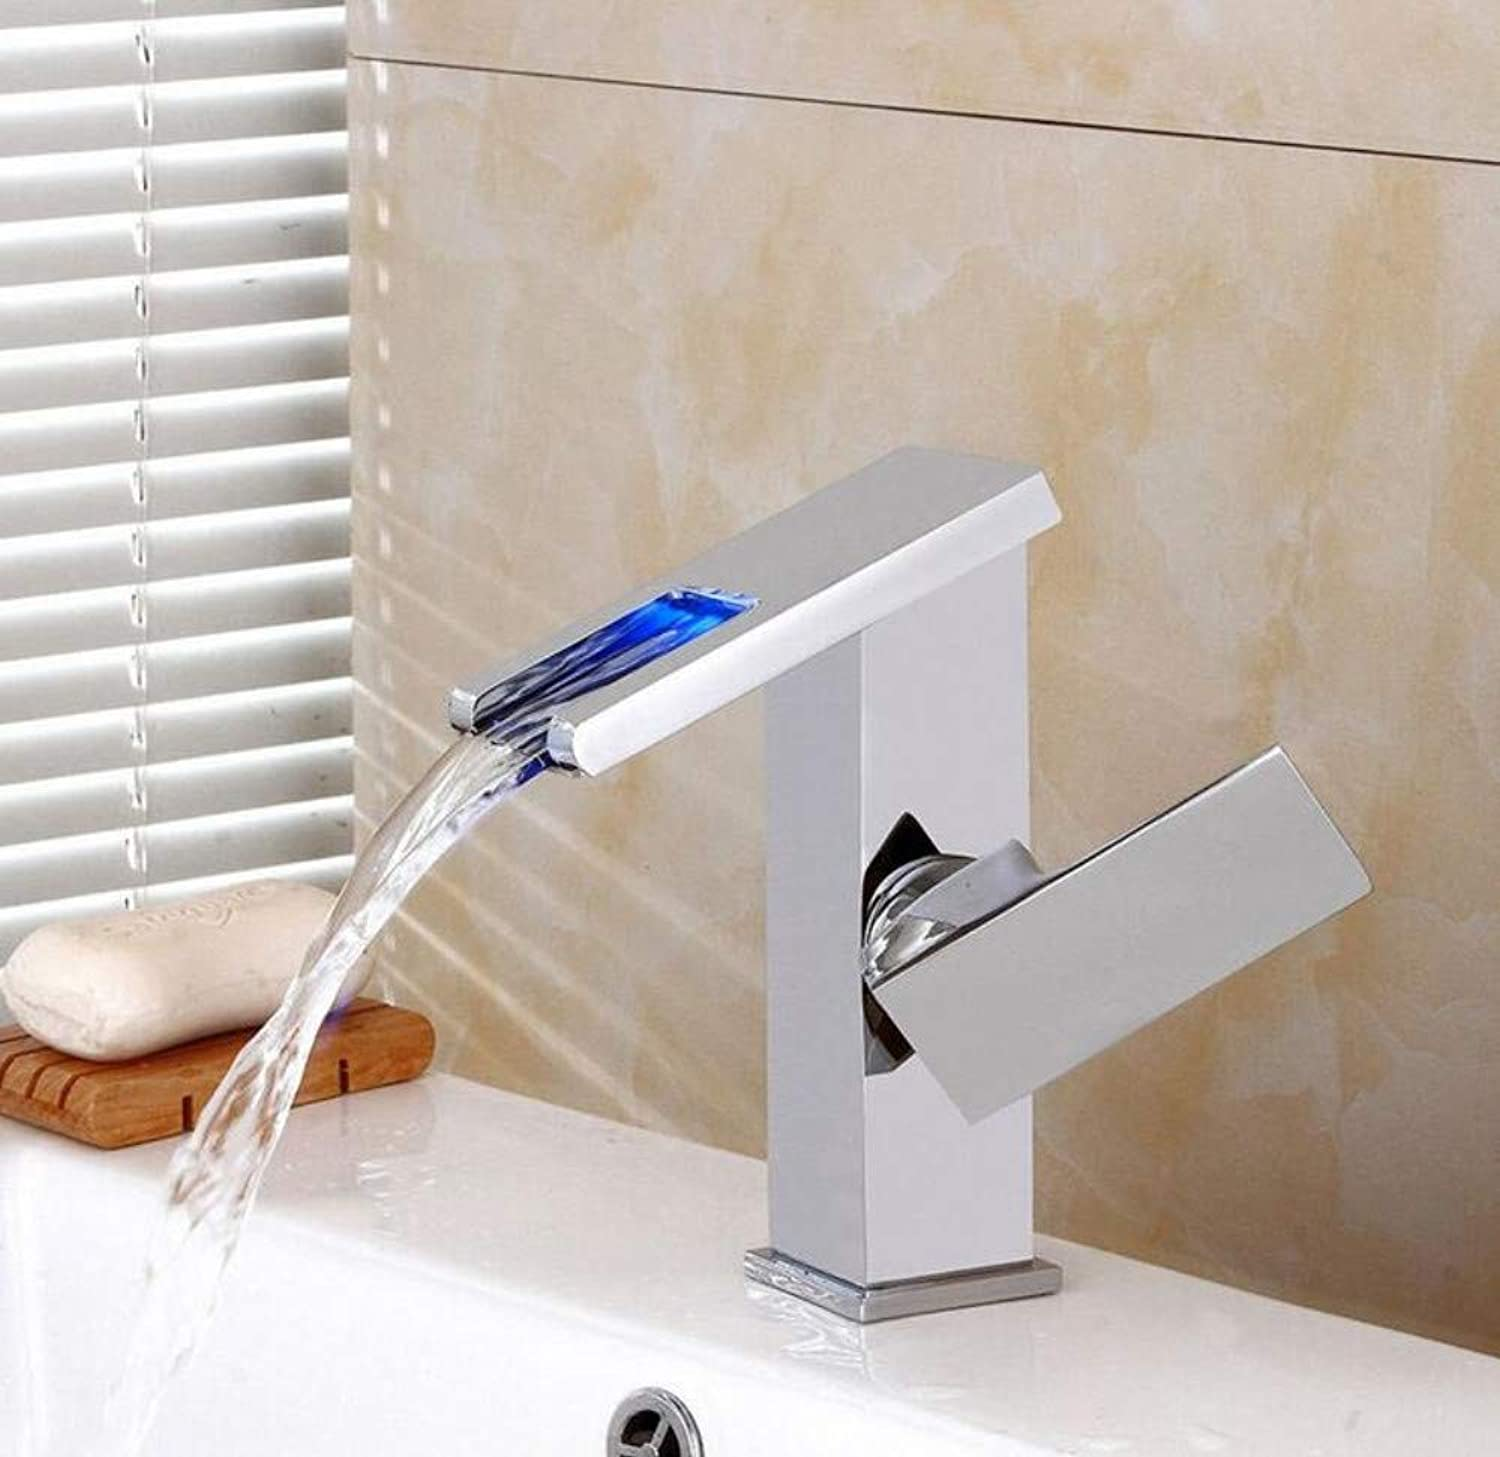 Mixer Basin Taps Sink Mixer Tap Sink Modern Led Cold Water Single Hole Bathroom Faucet Basin Taps